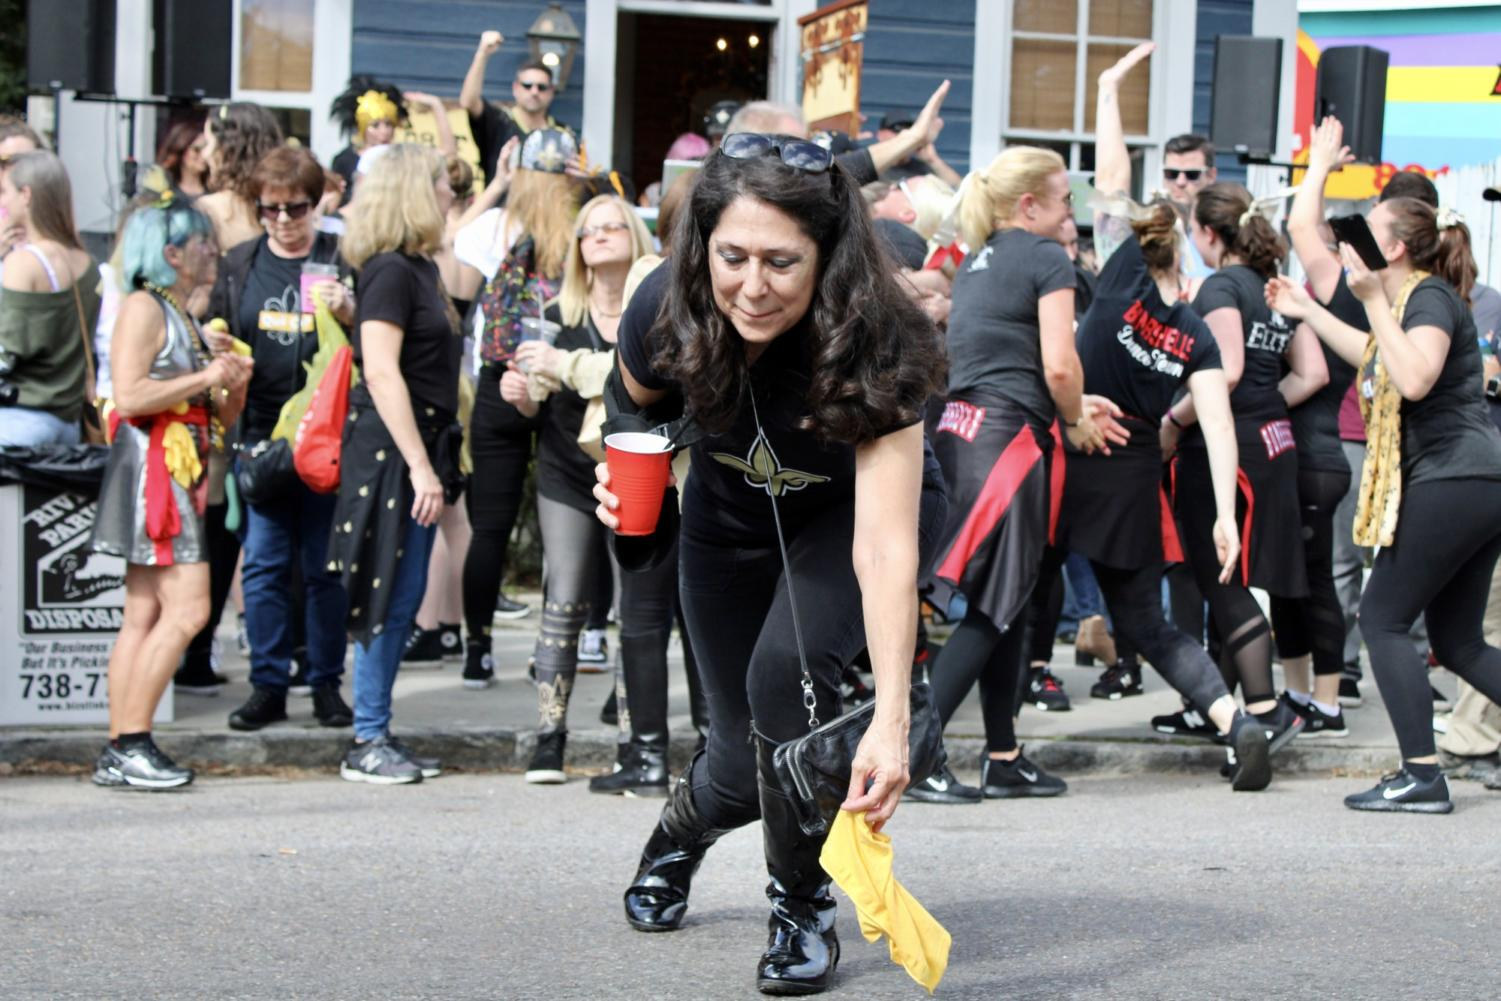 A Saints fan picks up a thrown flag at the Magazine Street block party. Photo credit: Madison Mcloughlin